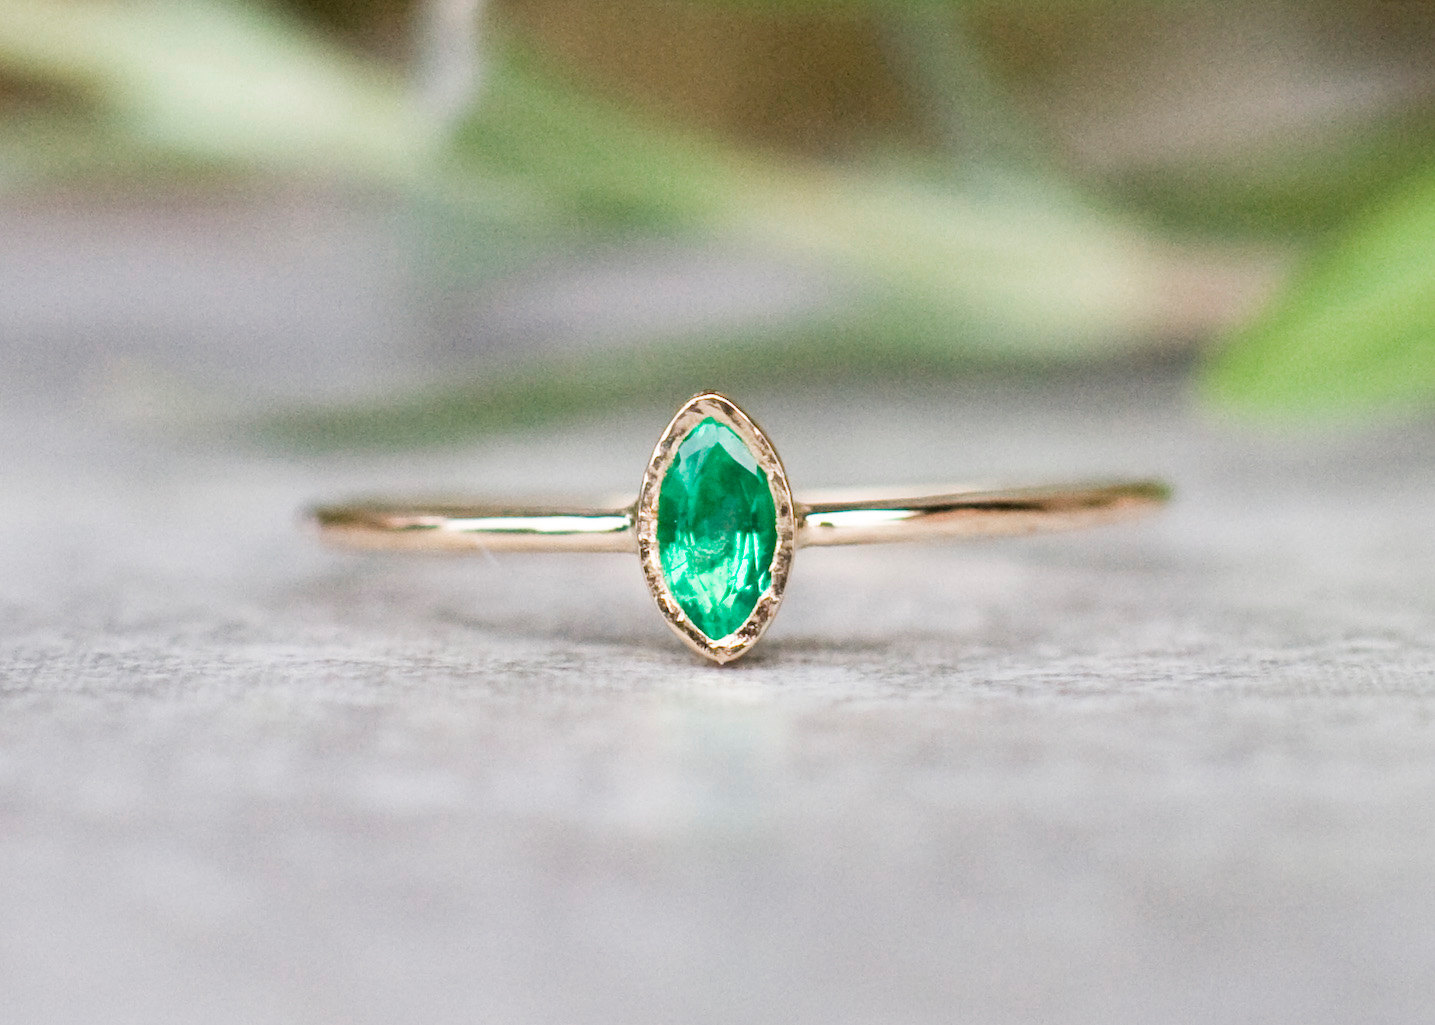 cut wedding rings engagment twig jewelry boho one jewellery of and engagement gemstone band kind ring emerald a diamond